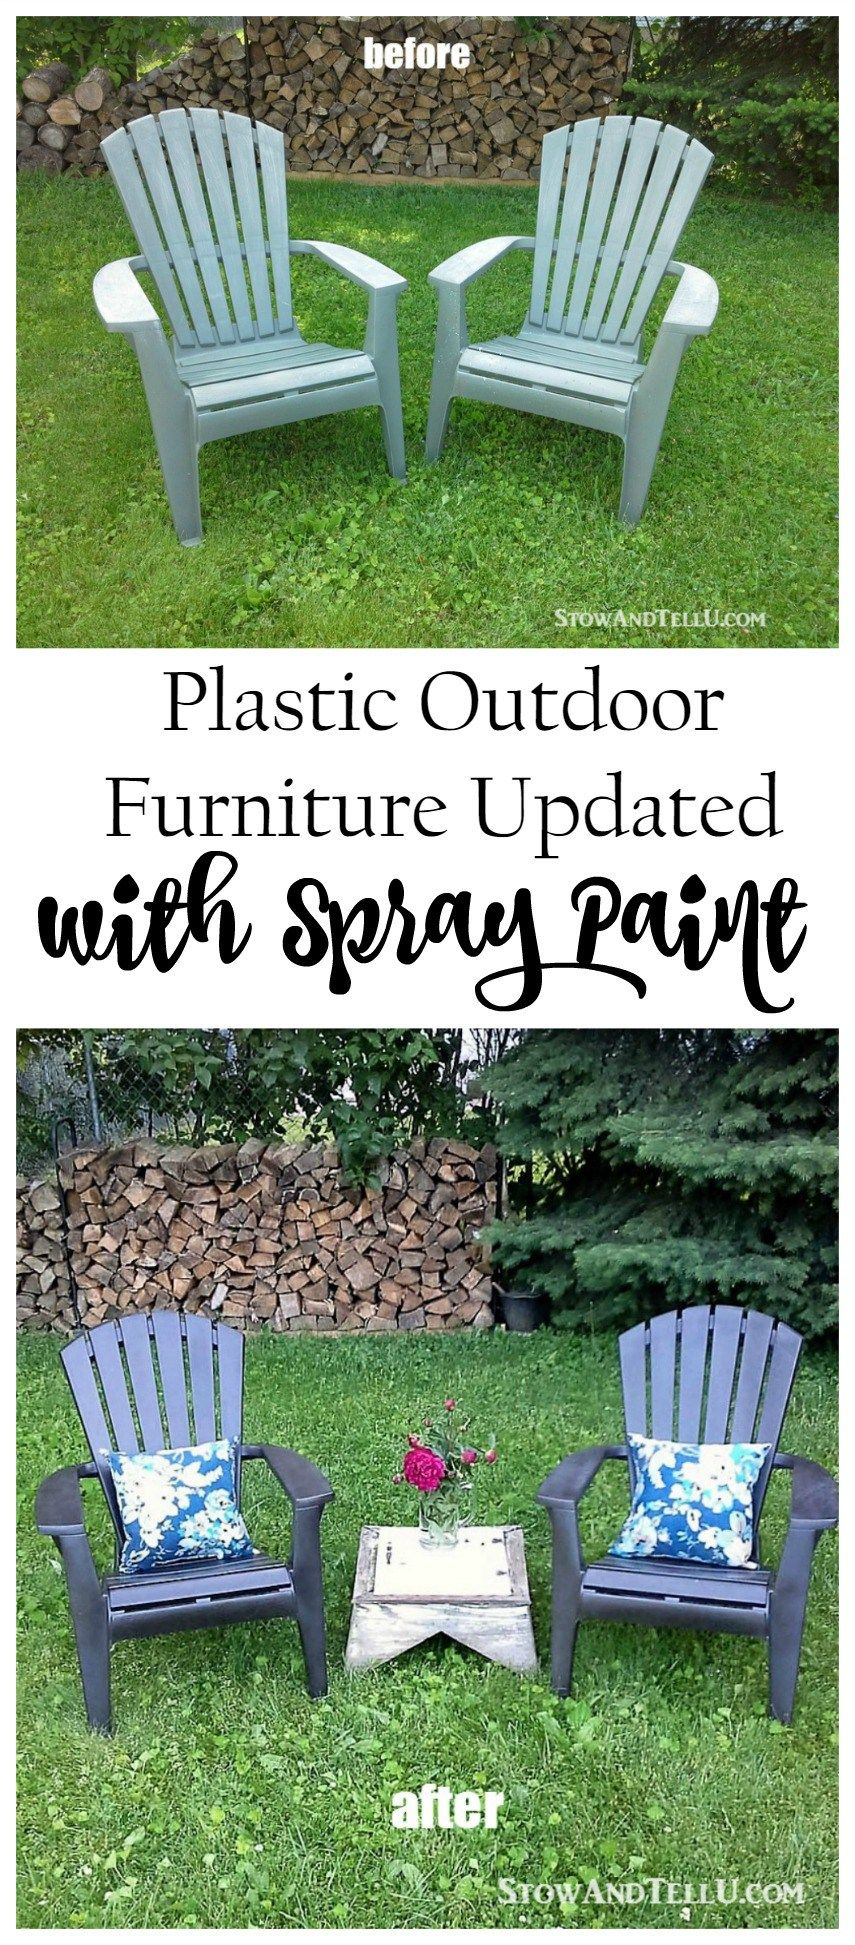 yardworkation #1 - spray paint and plastic lawn chairs   diy